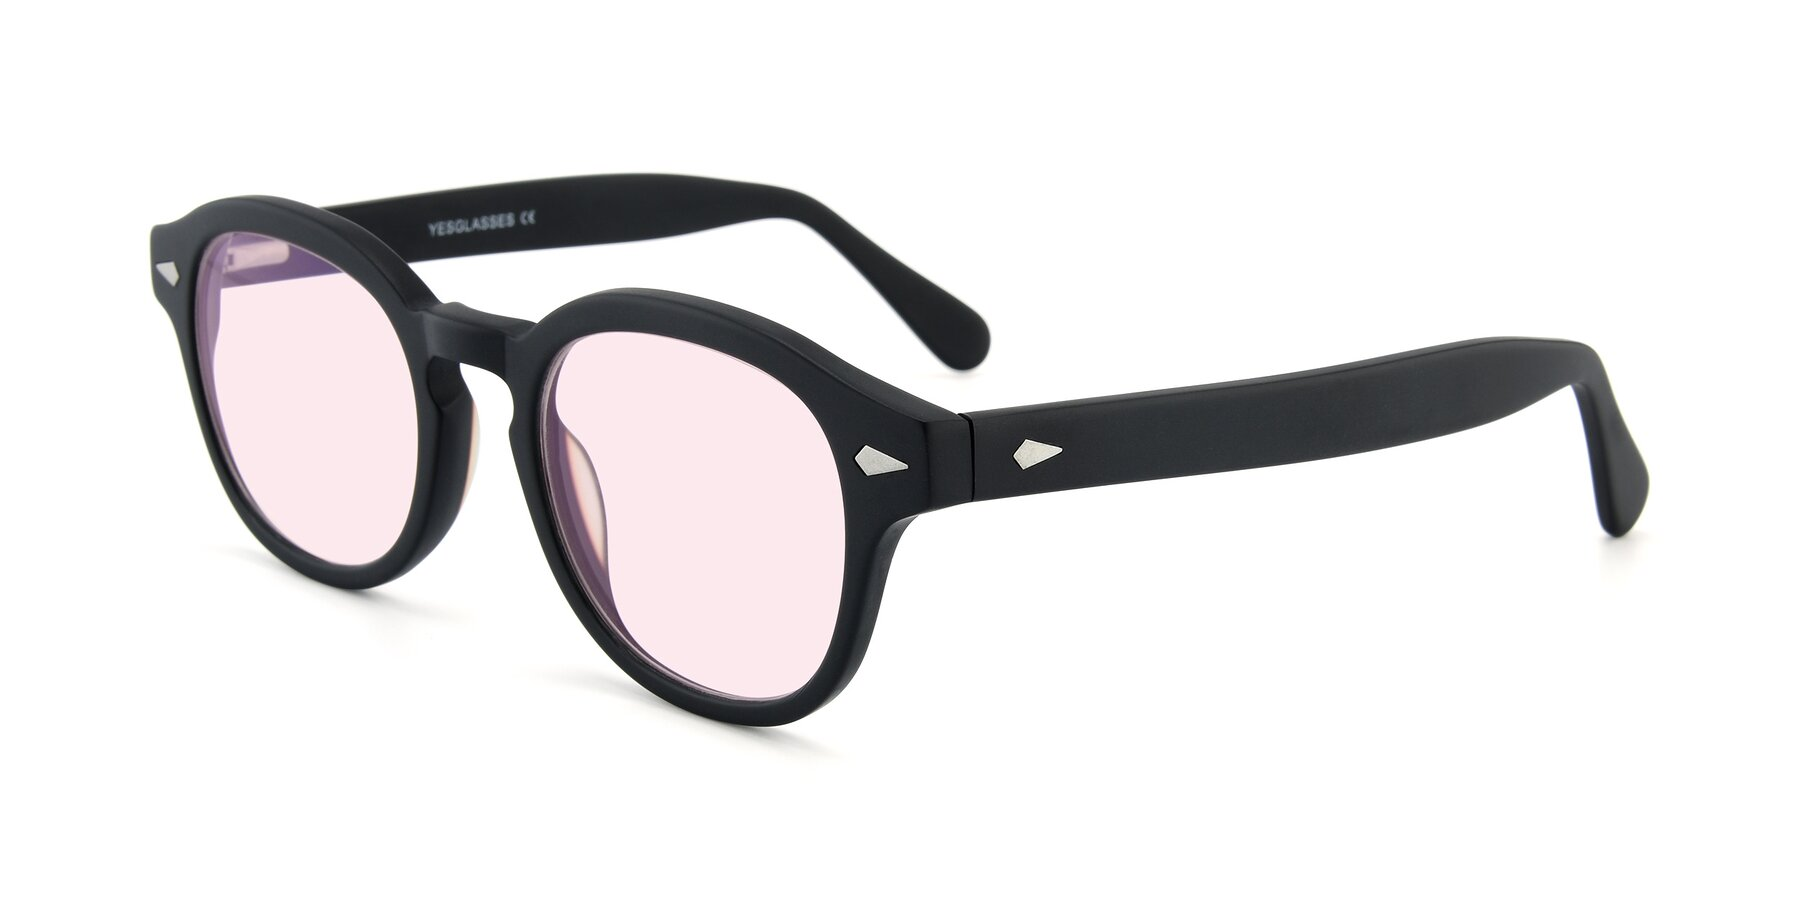 Angle of SR1609 in Matte Black with Light Pink Tinted Lenses